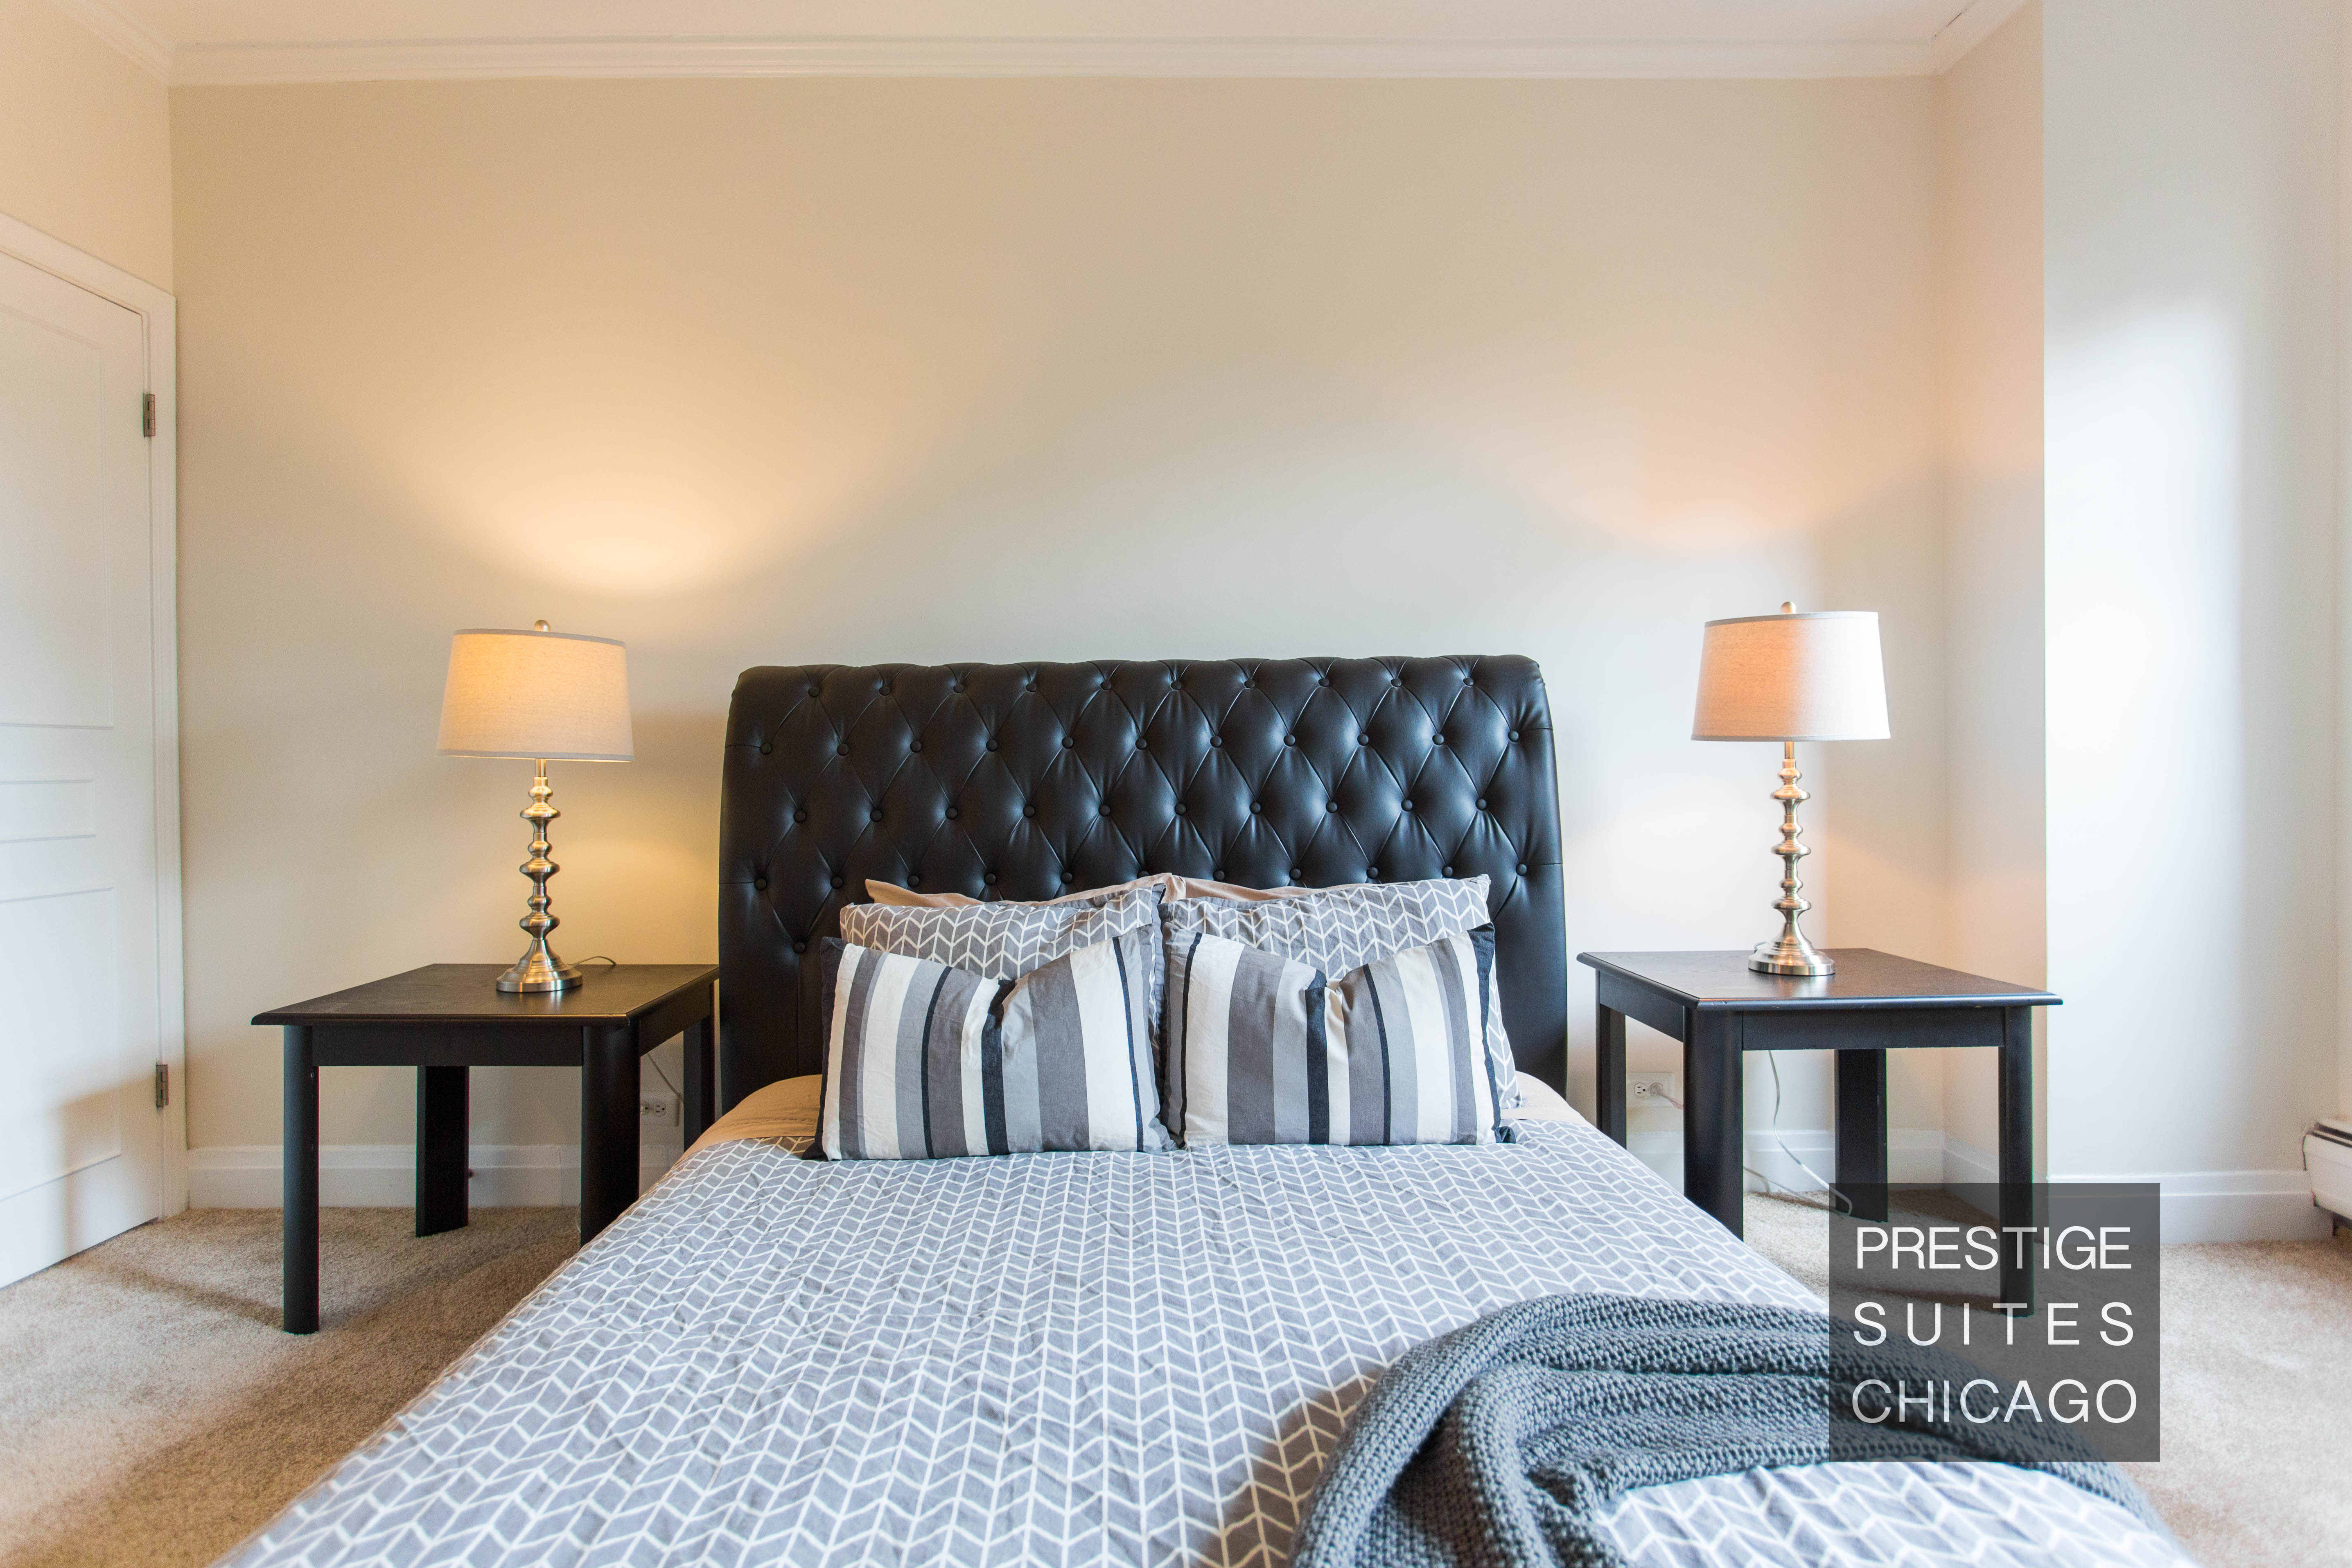 Prestige Suites Home Staging